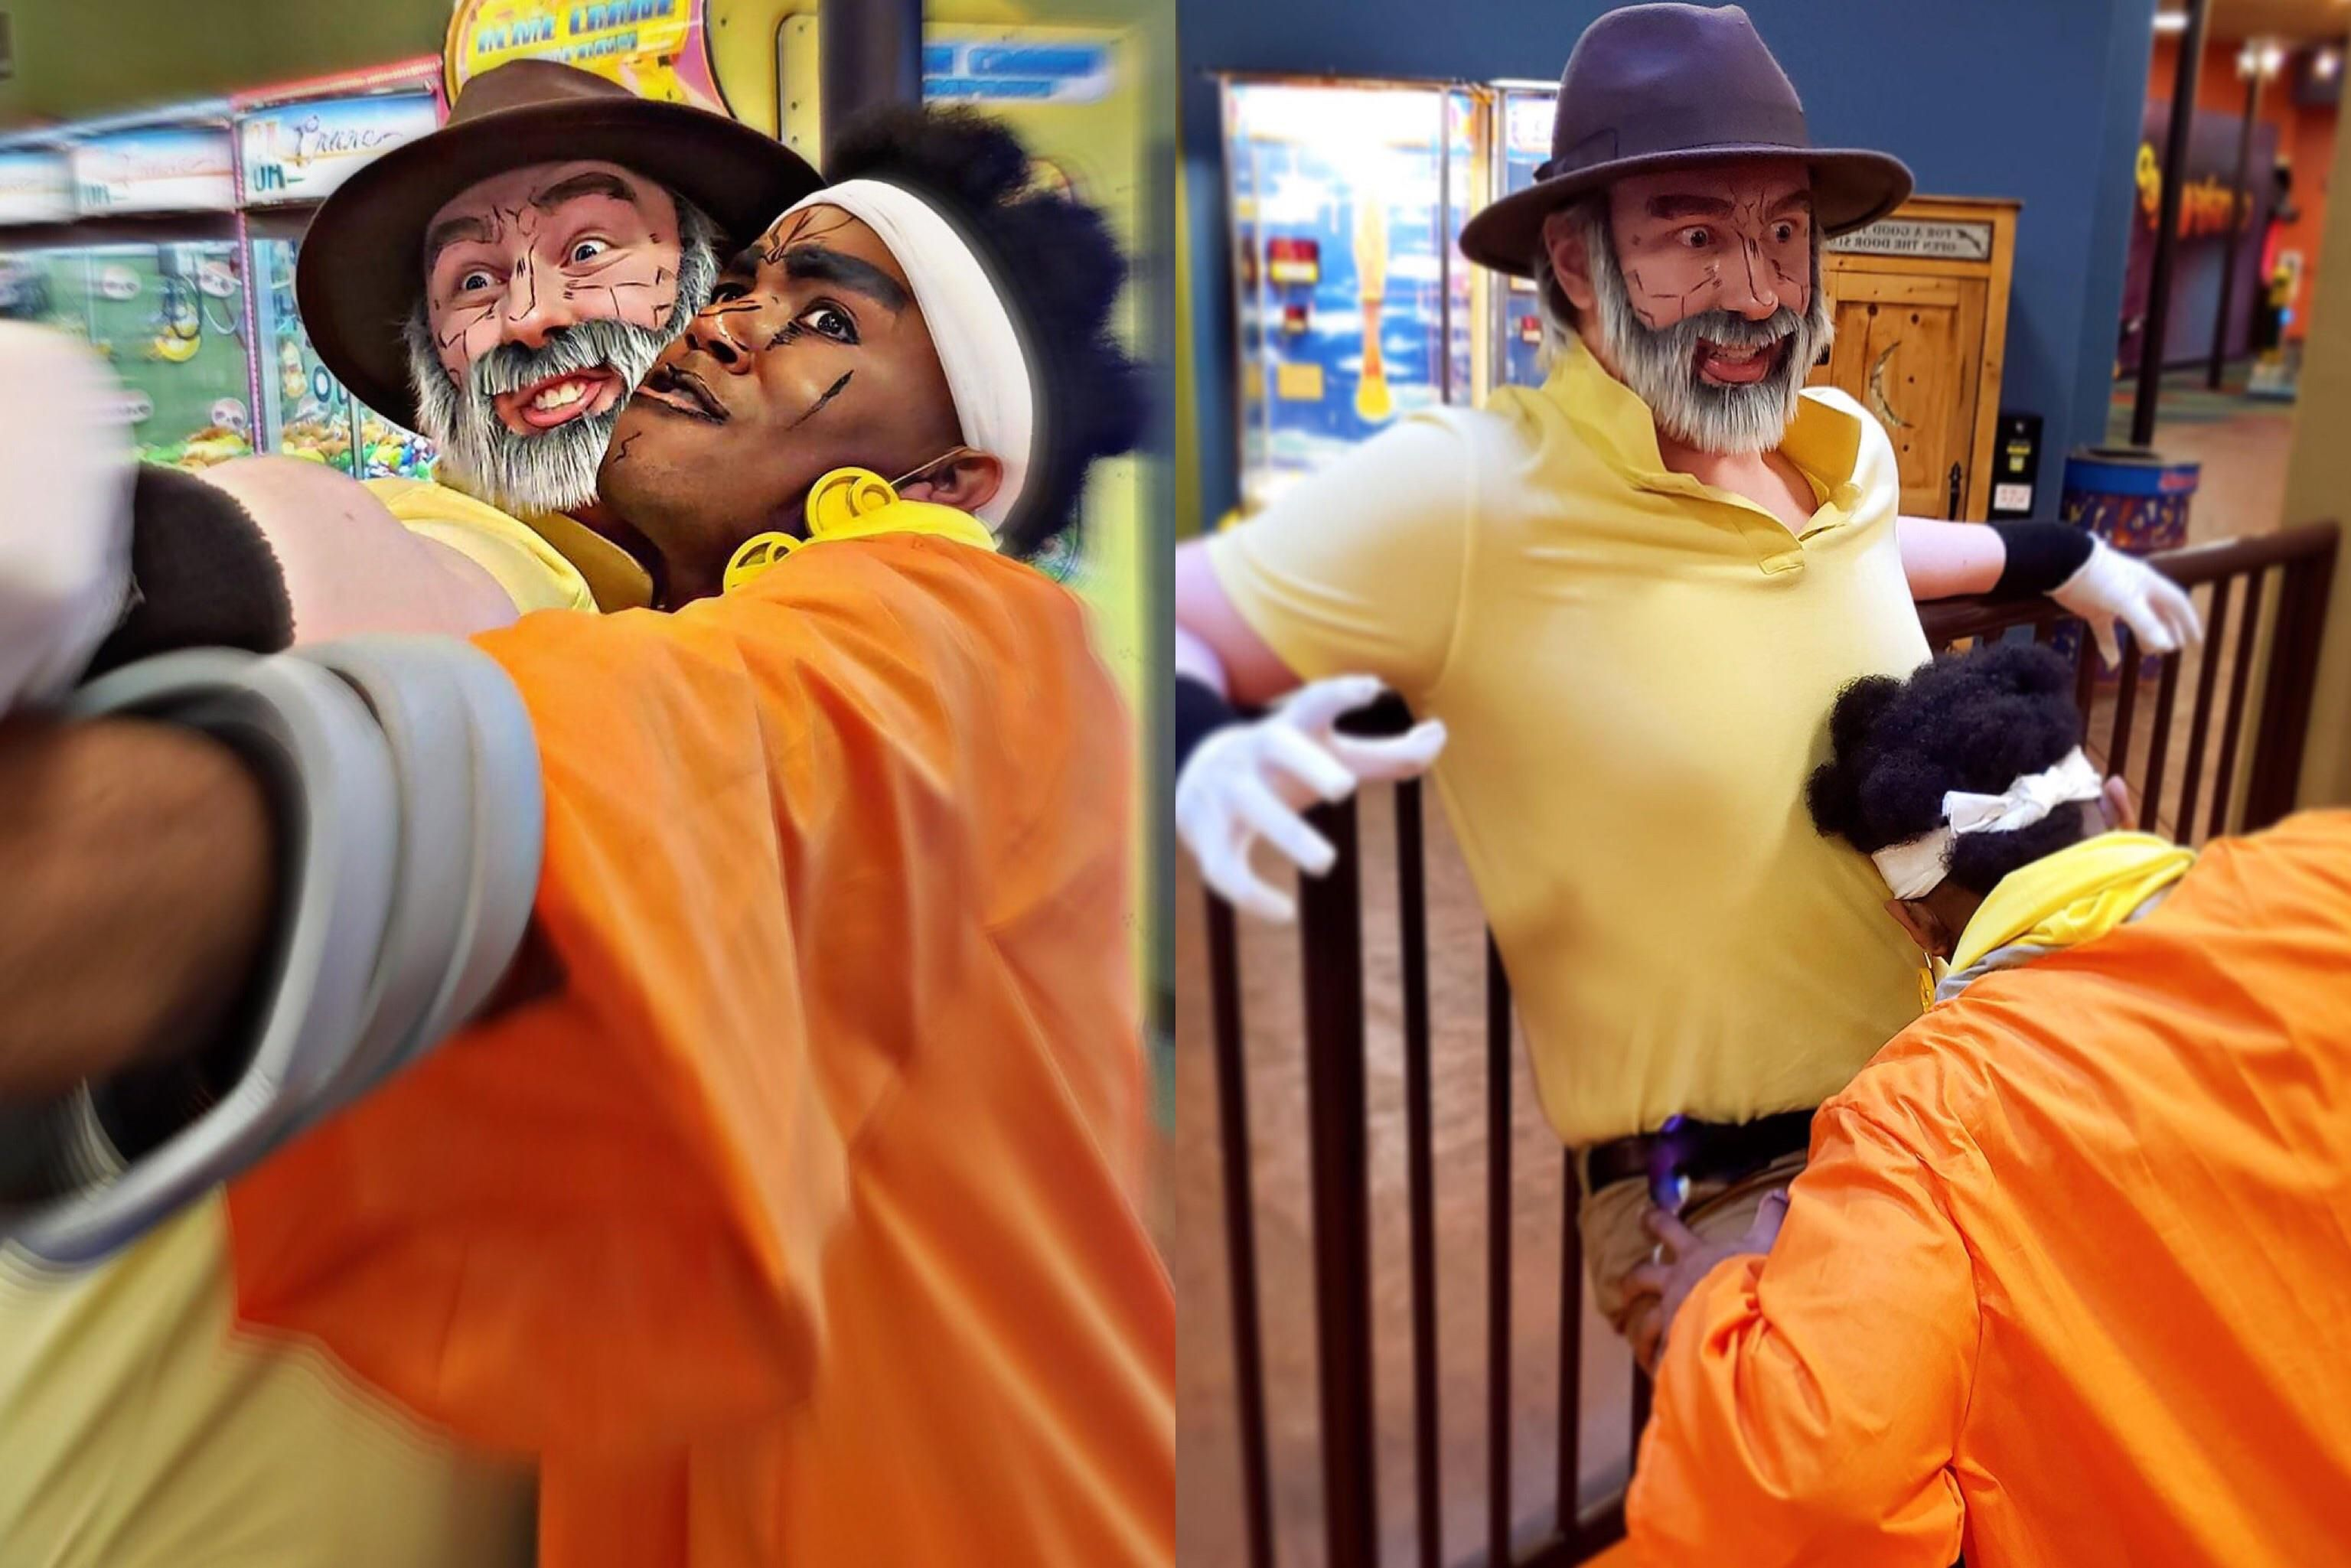 Myself and my friend cosplayed joseph and avdol from